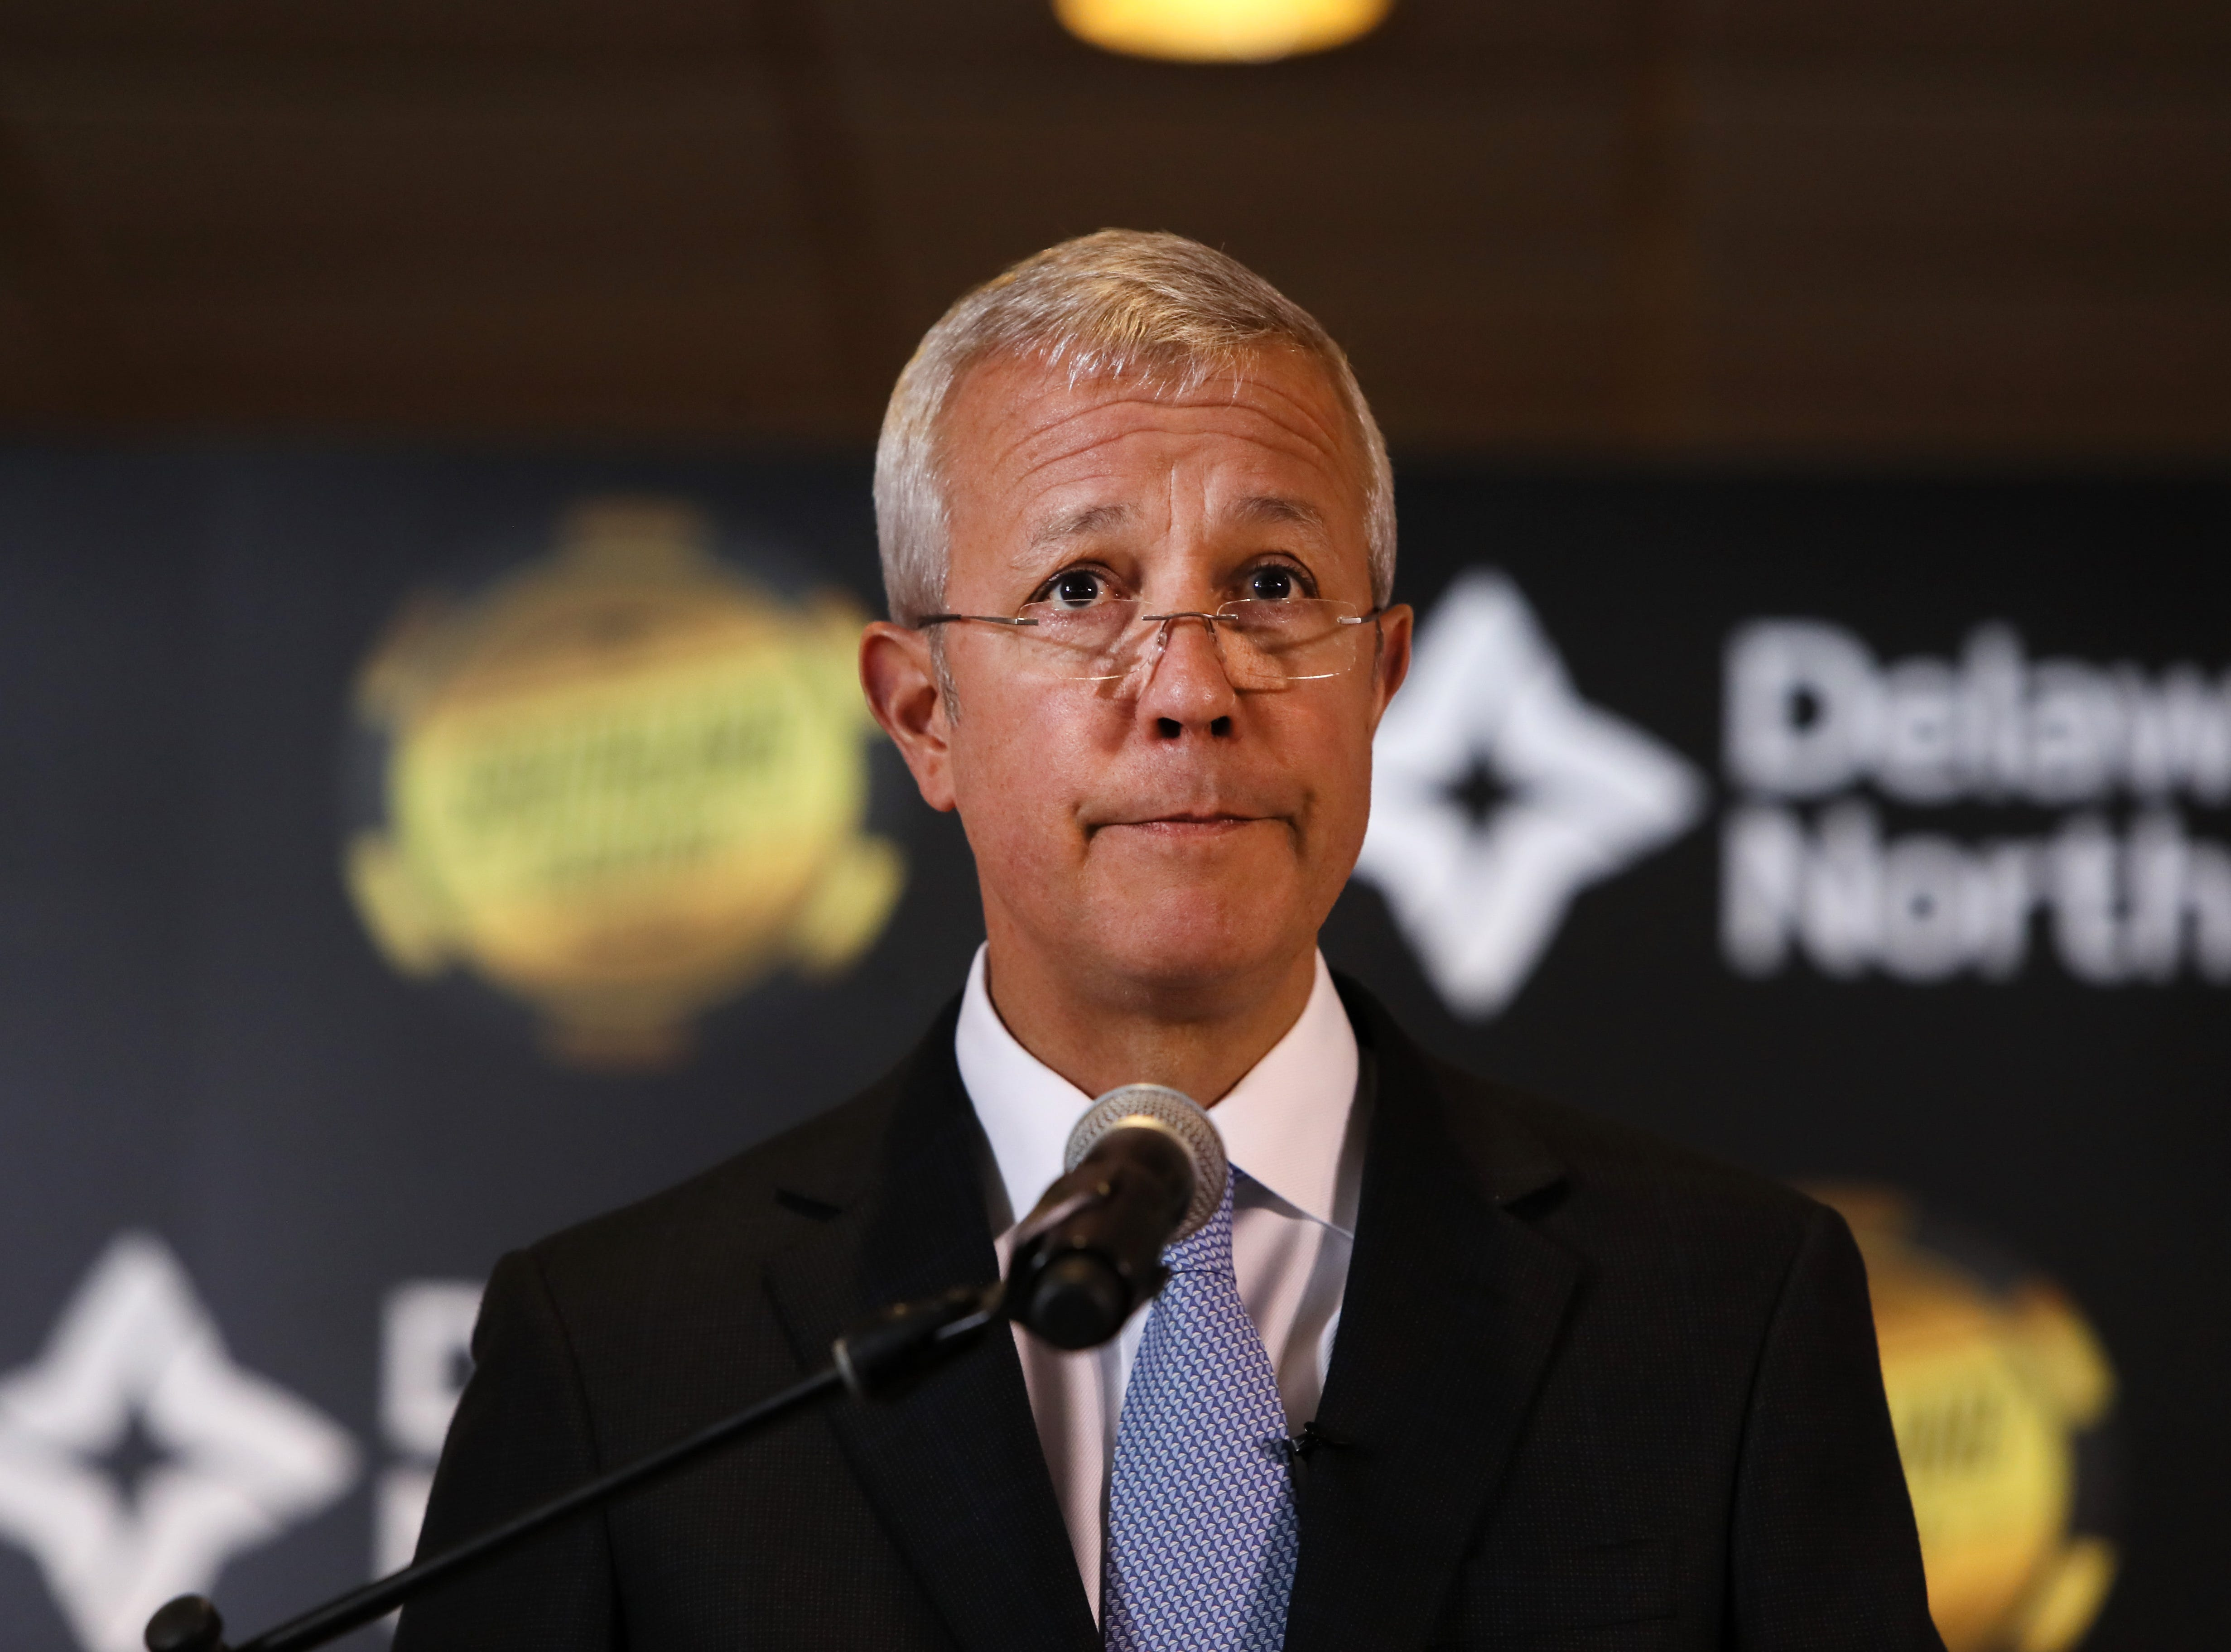 Lou Jacobs, co-chief executive officer of hospitality company Delaware North, makes an announcement of their $250 million expansion of Southland Gaming and Racing at the West Memphis casino on Thursday, Jan. 24, 2019.